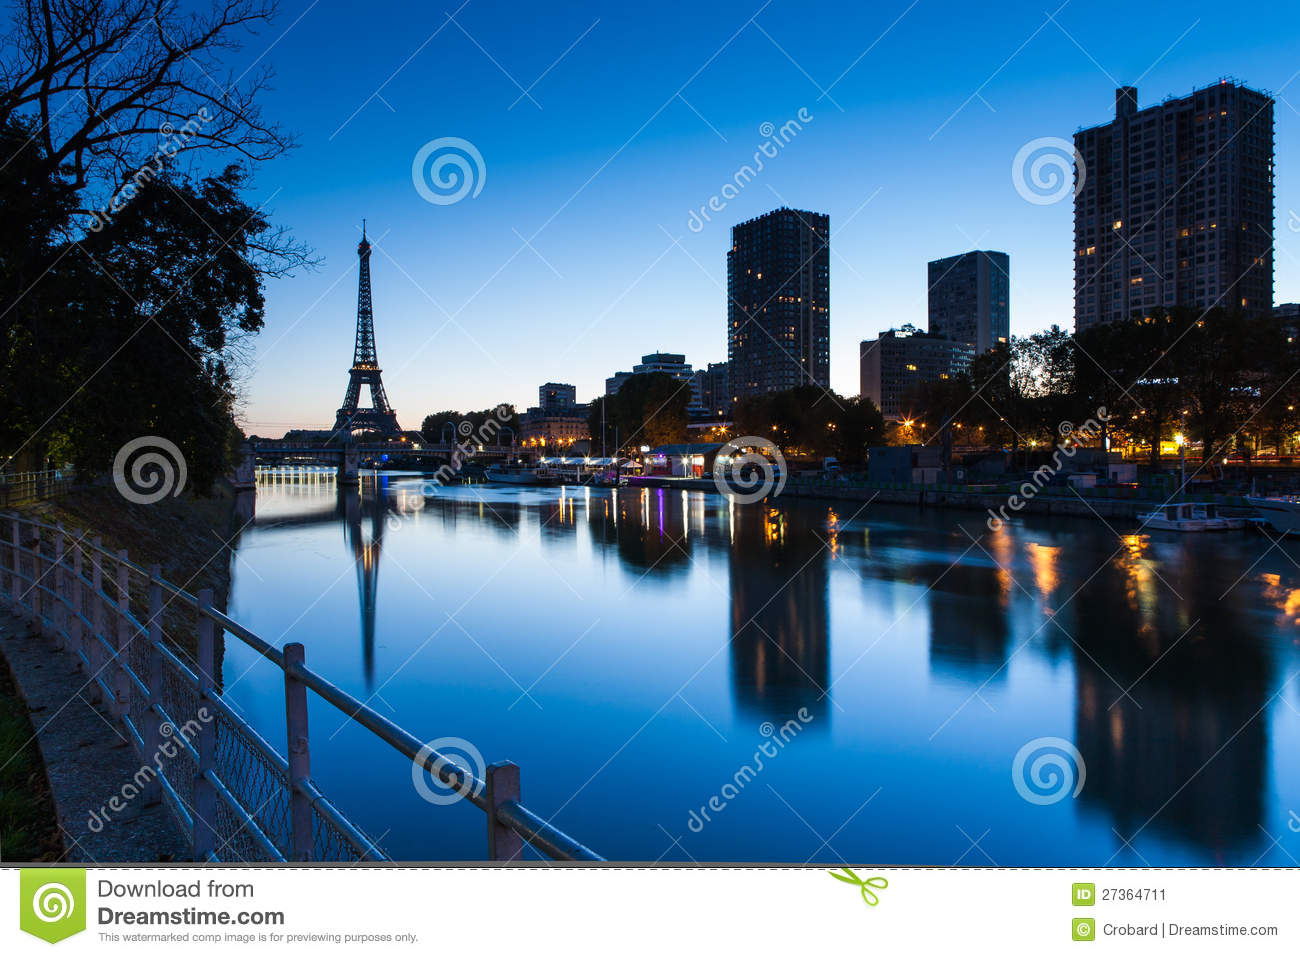 good morning eiffel paris france stock image image of morning cityscape 27364711. Black Bedroom Furniture Sets. Home Design Ideas